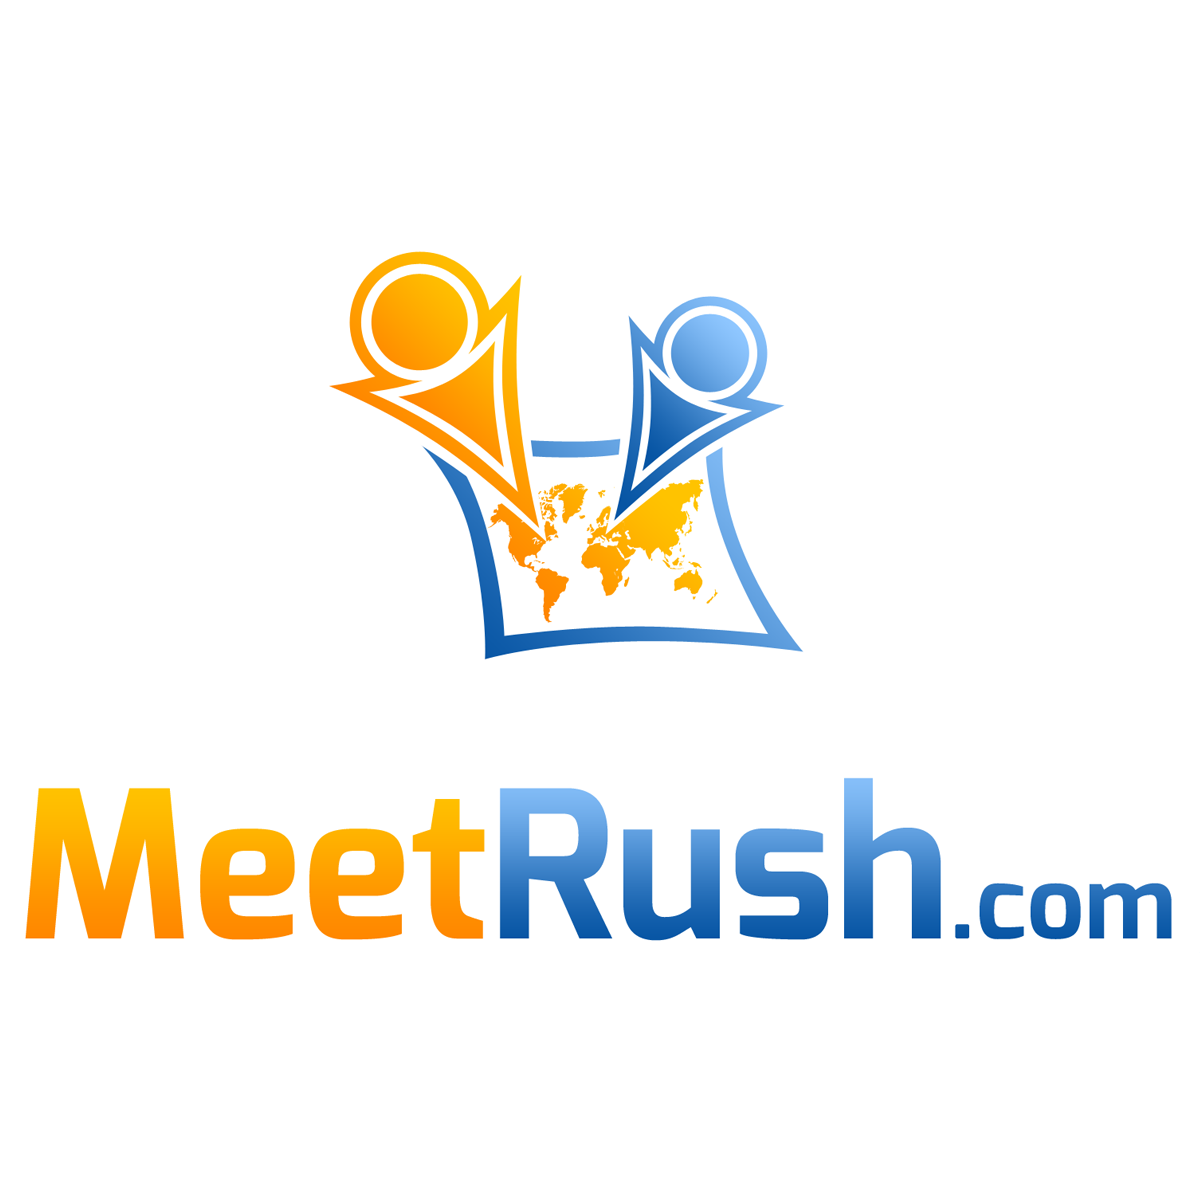 MeetRush.com